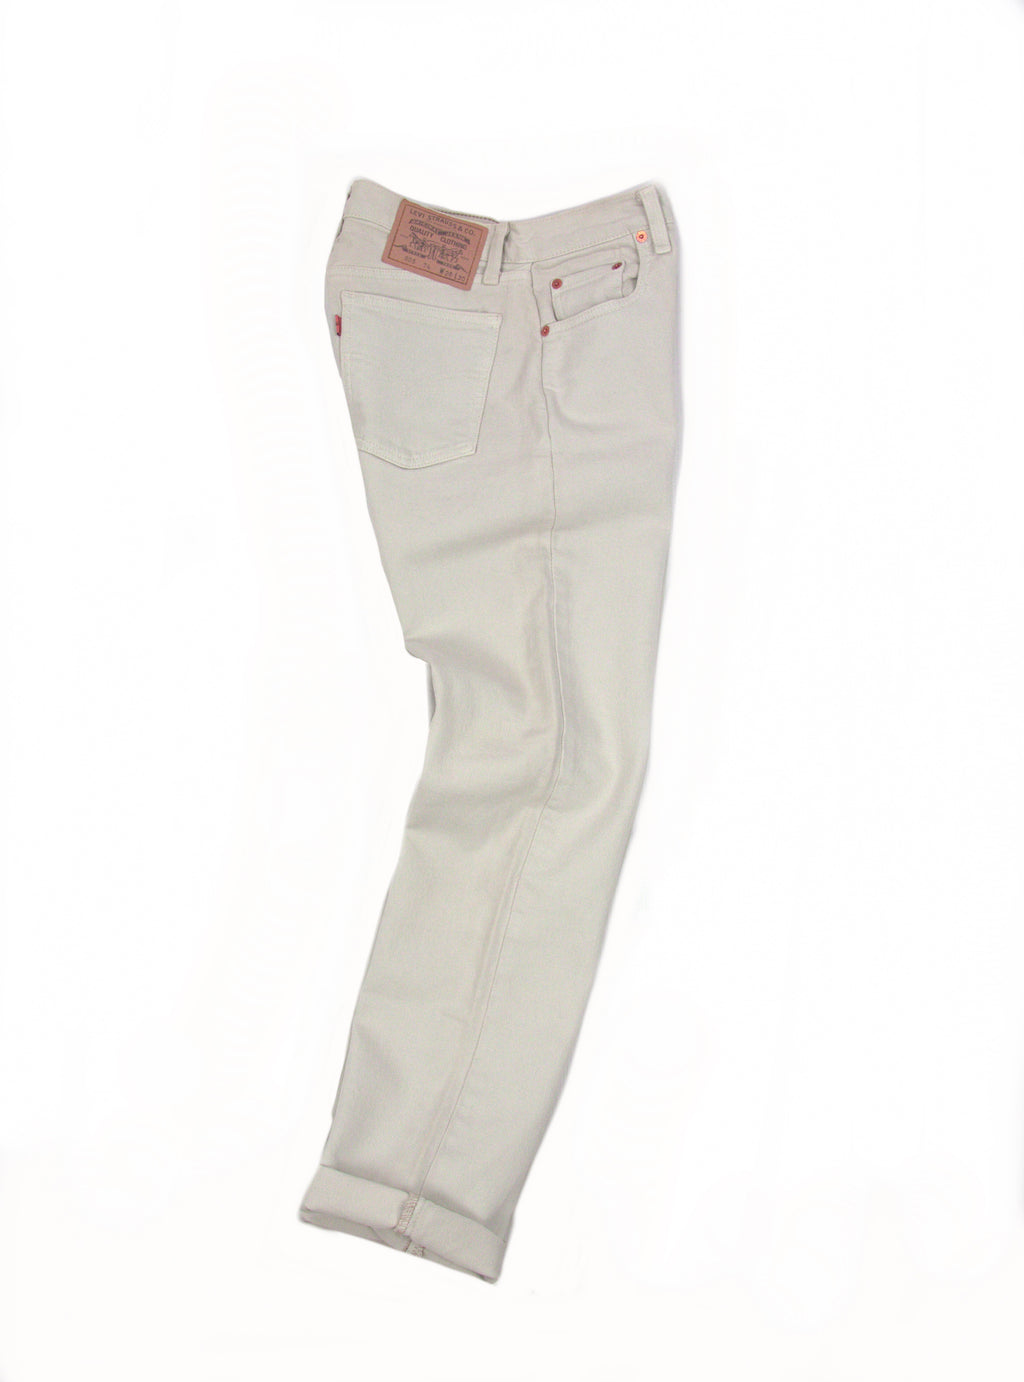 Levi's 805 Vintage Orange Tab Ivory Jeans 28/30 - secondfirst